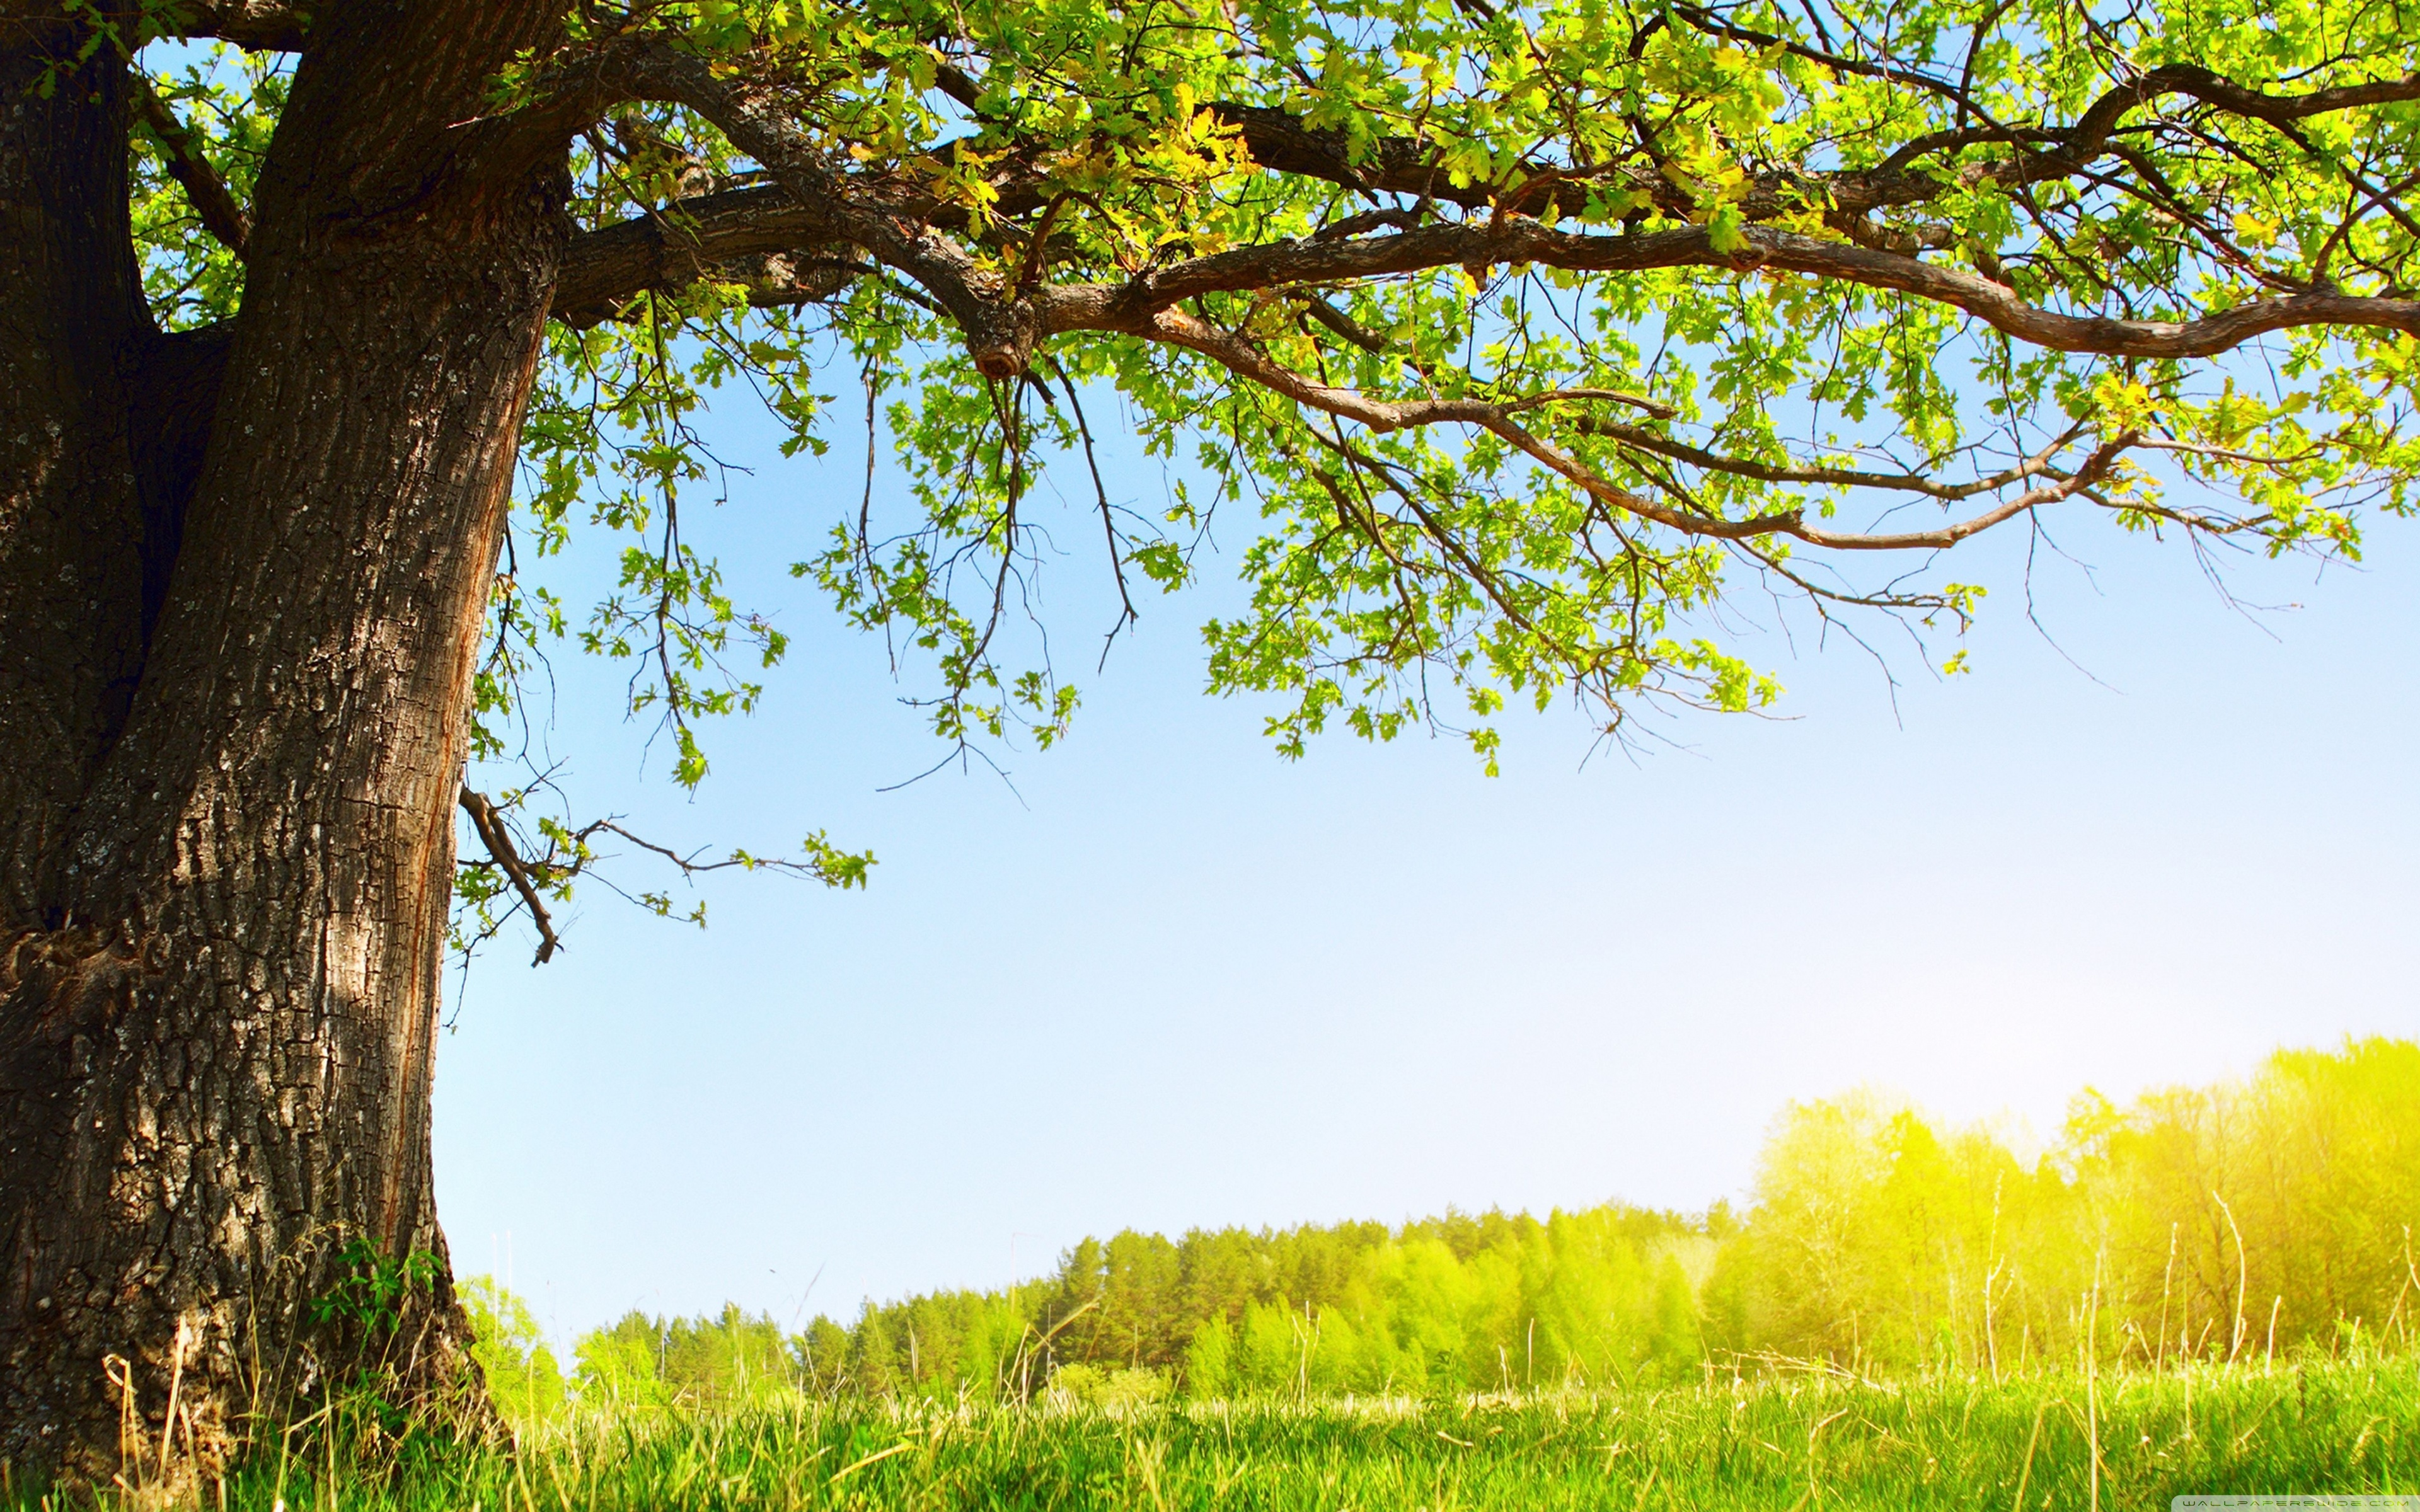 free photo under the tree park people nature free download